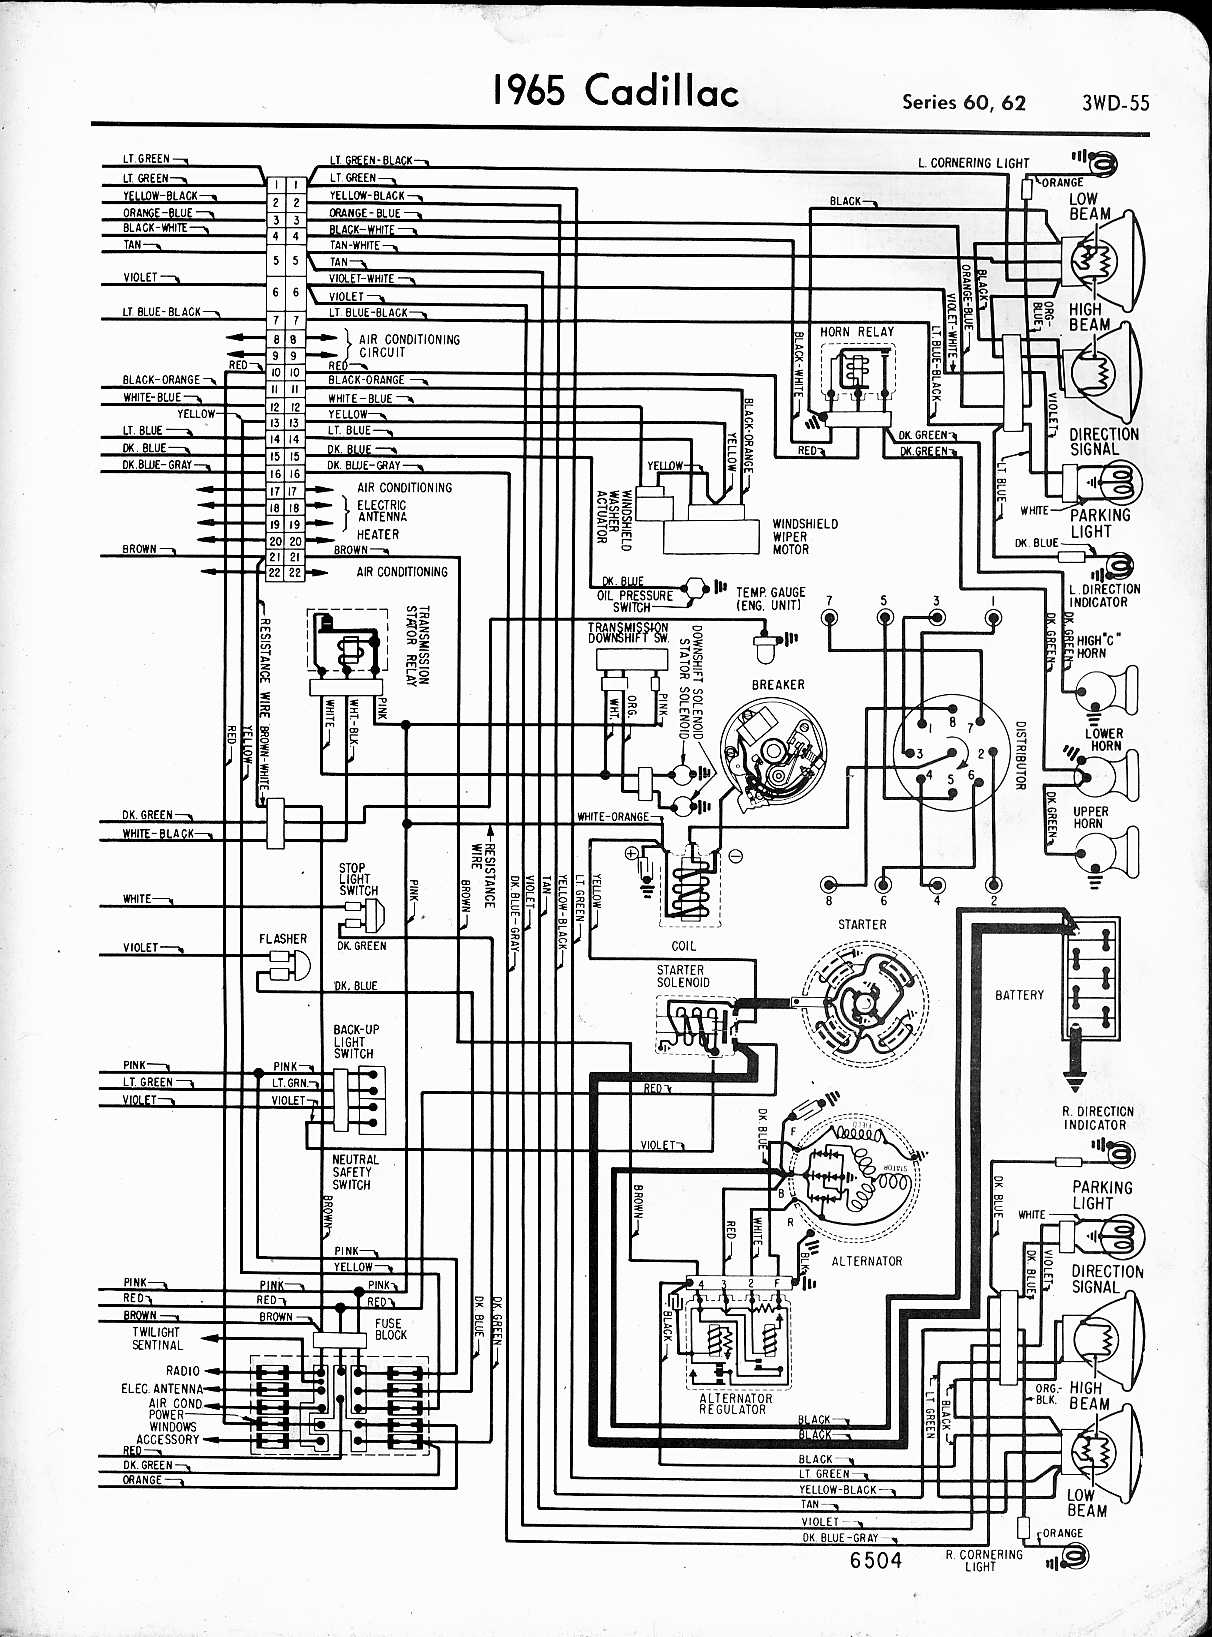 1999 cadillac wiring diagram trusted wiring diagrams u2022 rh weneedradio org 1965 impala engine wiring diagram engine wiring diagram 1967 chevy c10